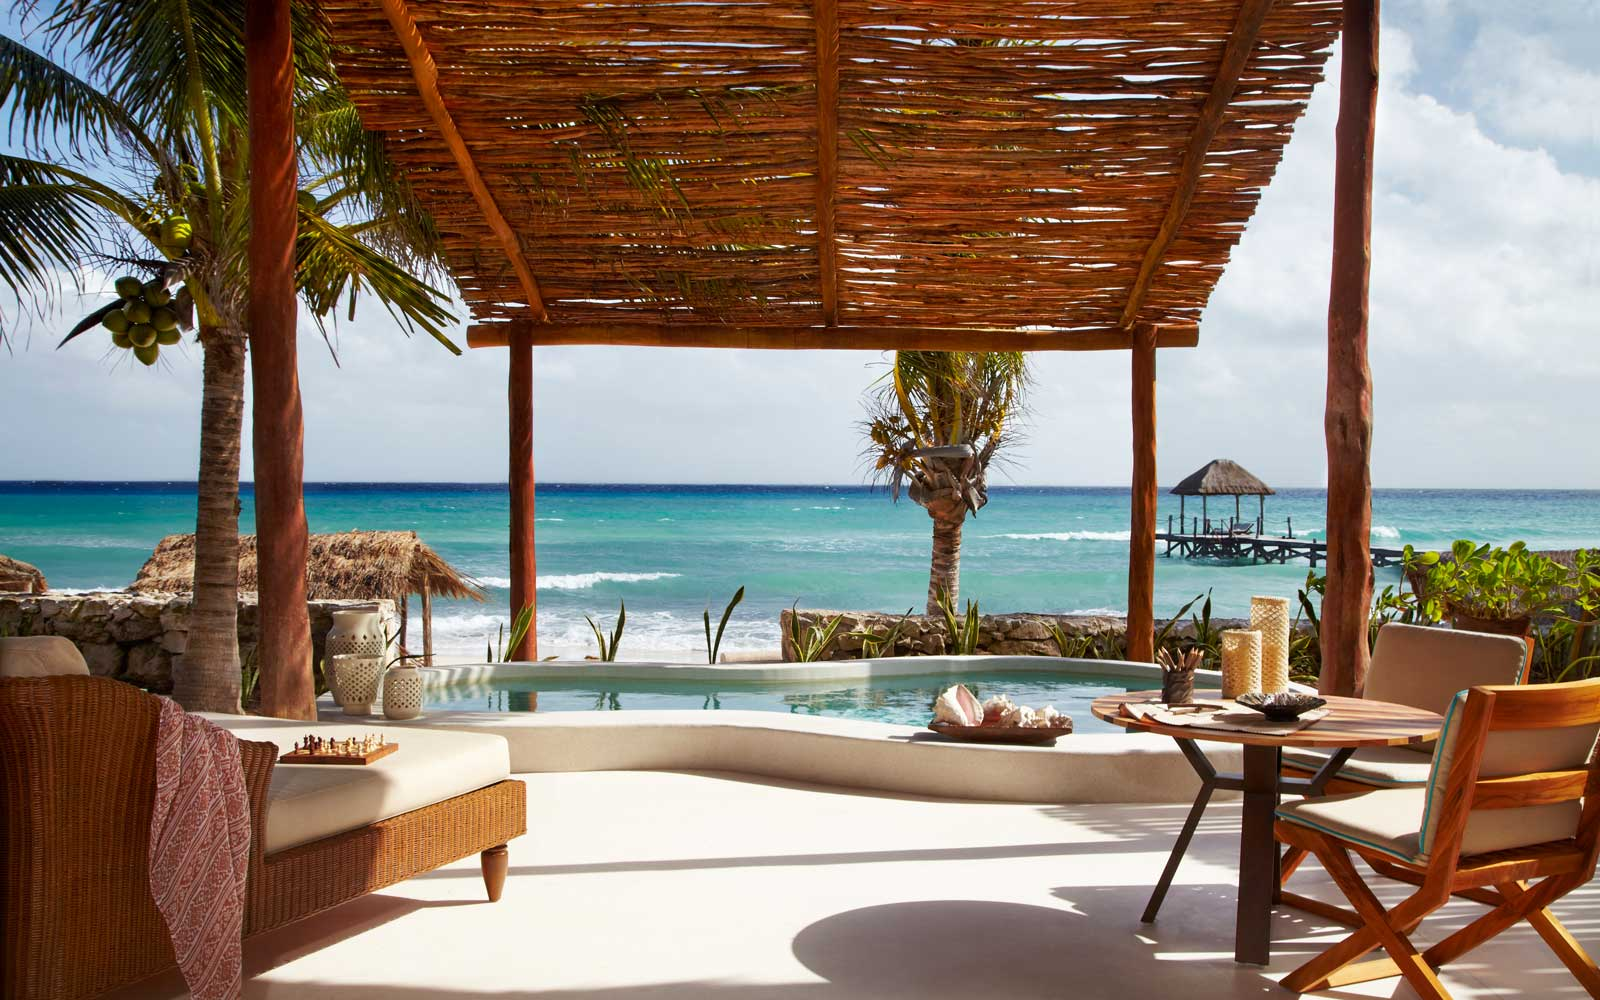 Enjoy 30% off Stays at Viceroy Riviera Maya